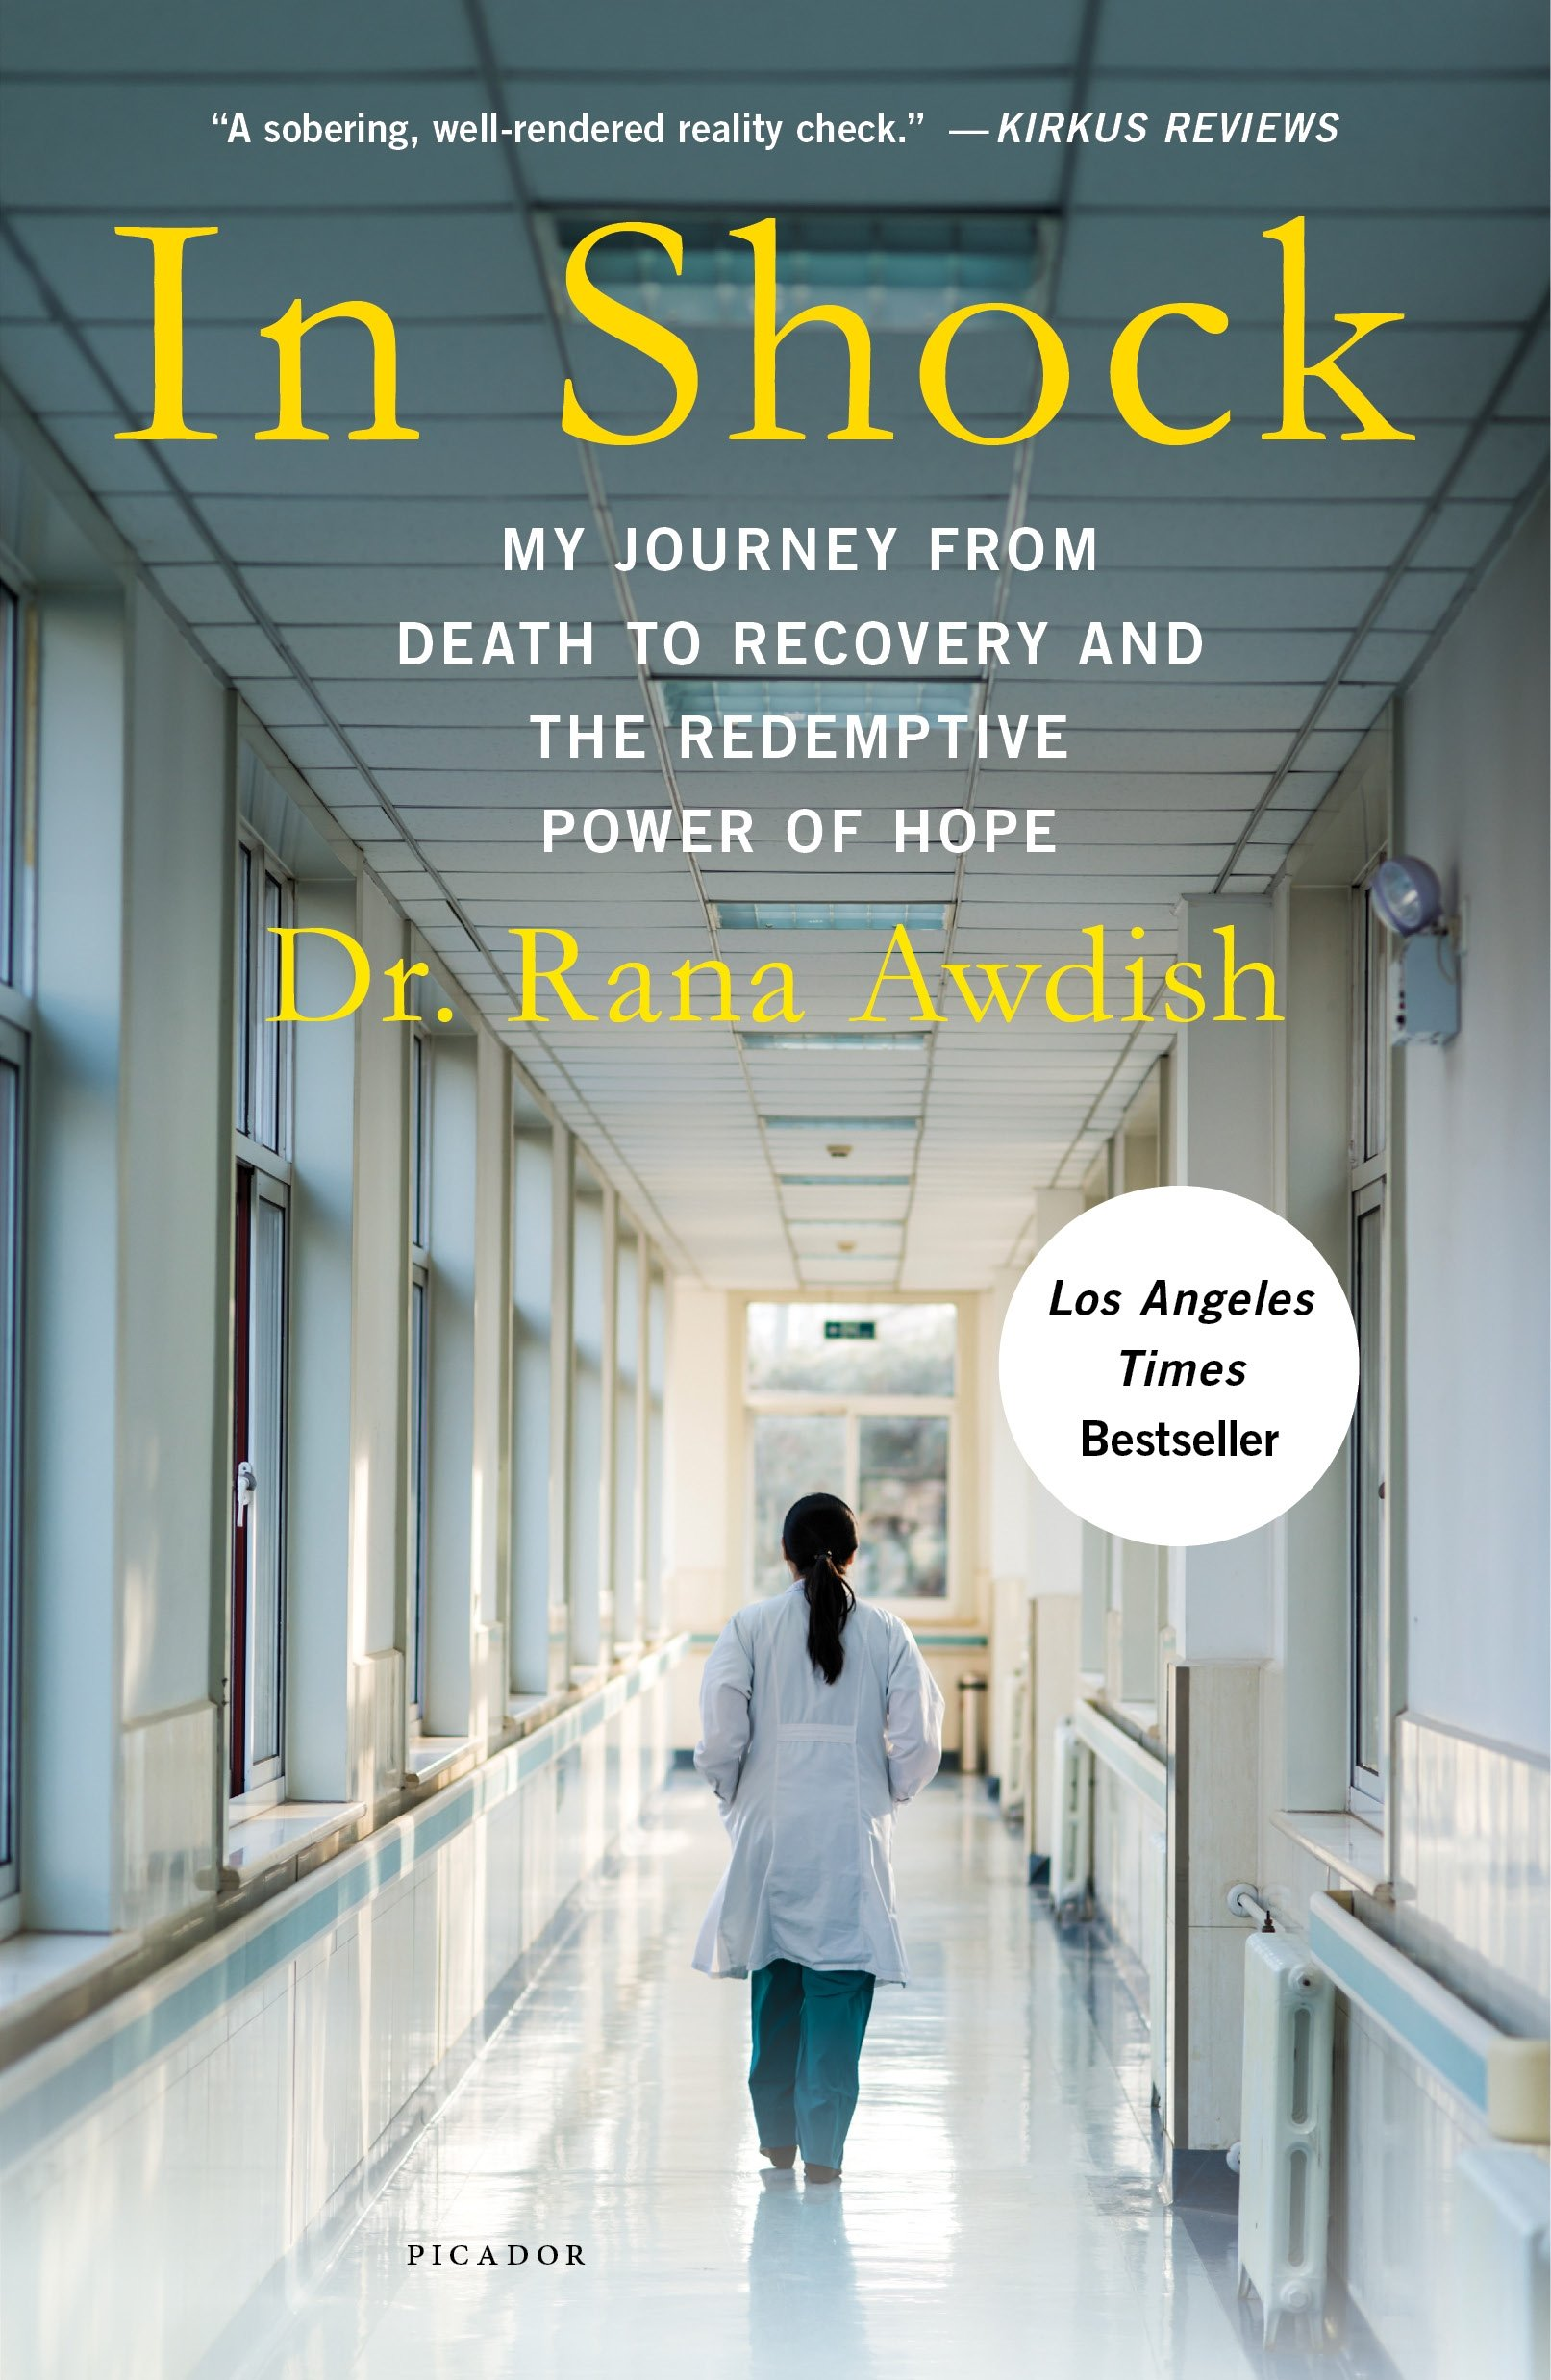 IHS Book Club Presents: In Shock by Dr. Rana Awdish